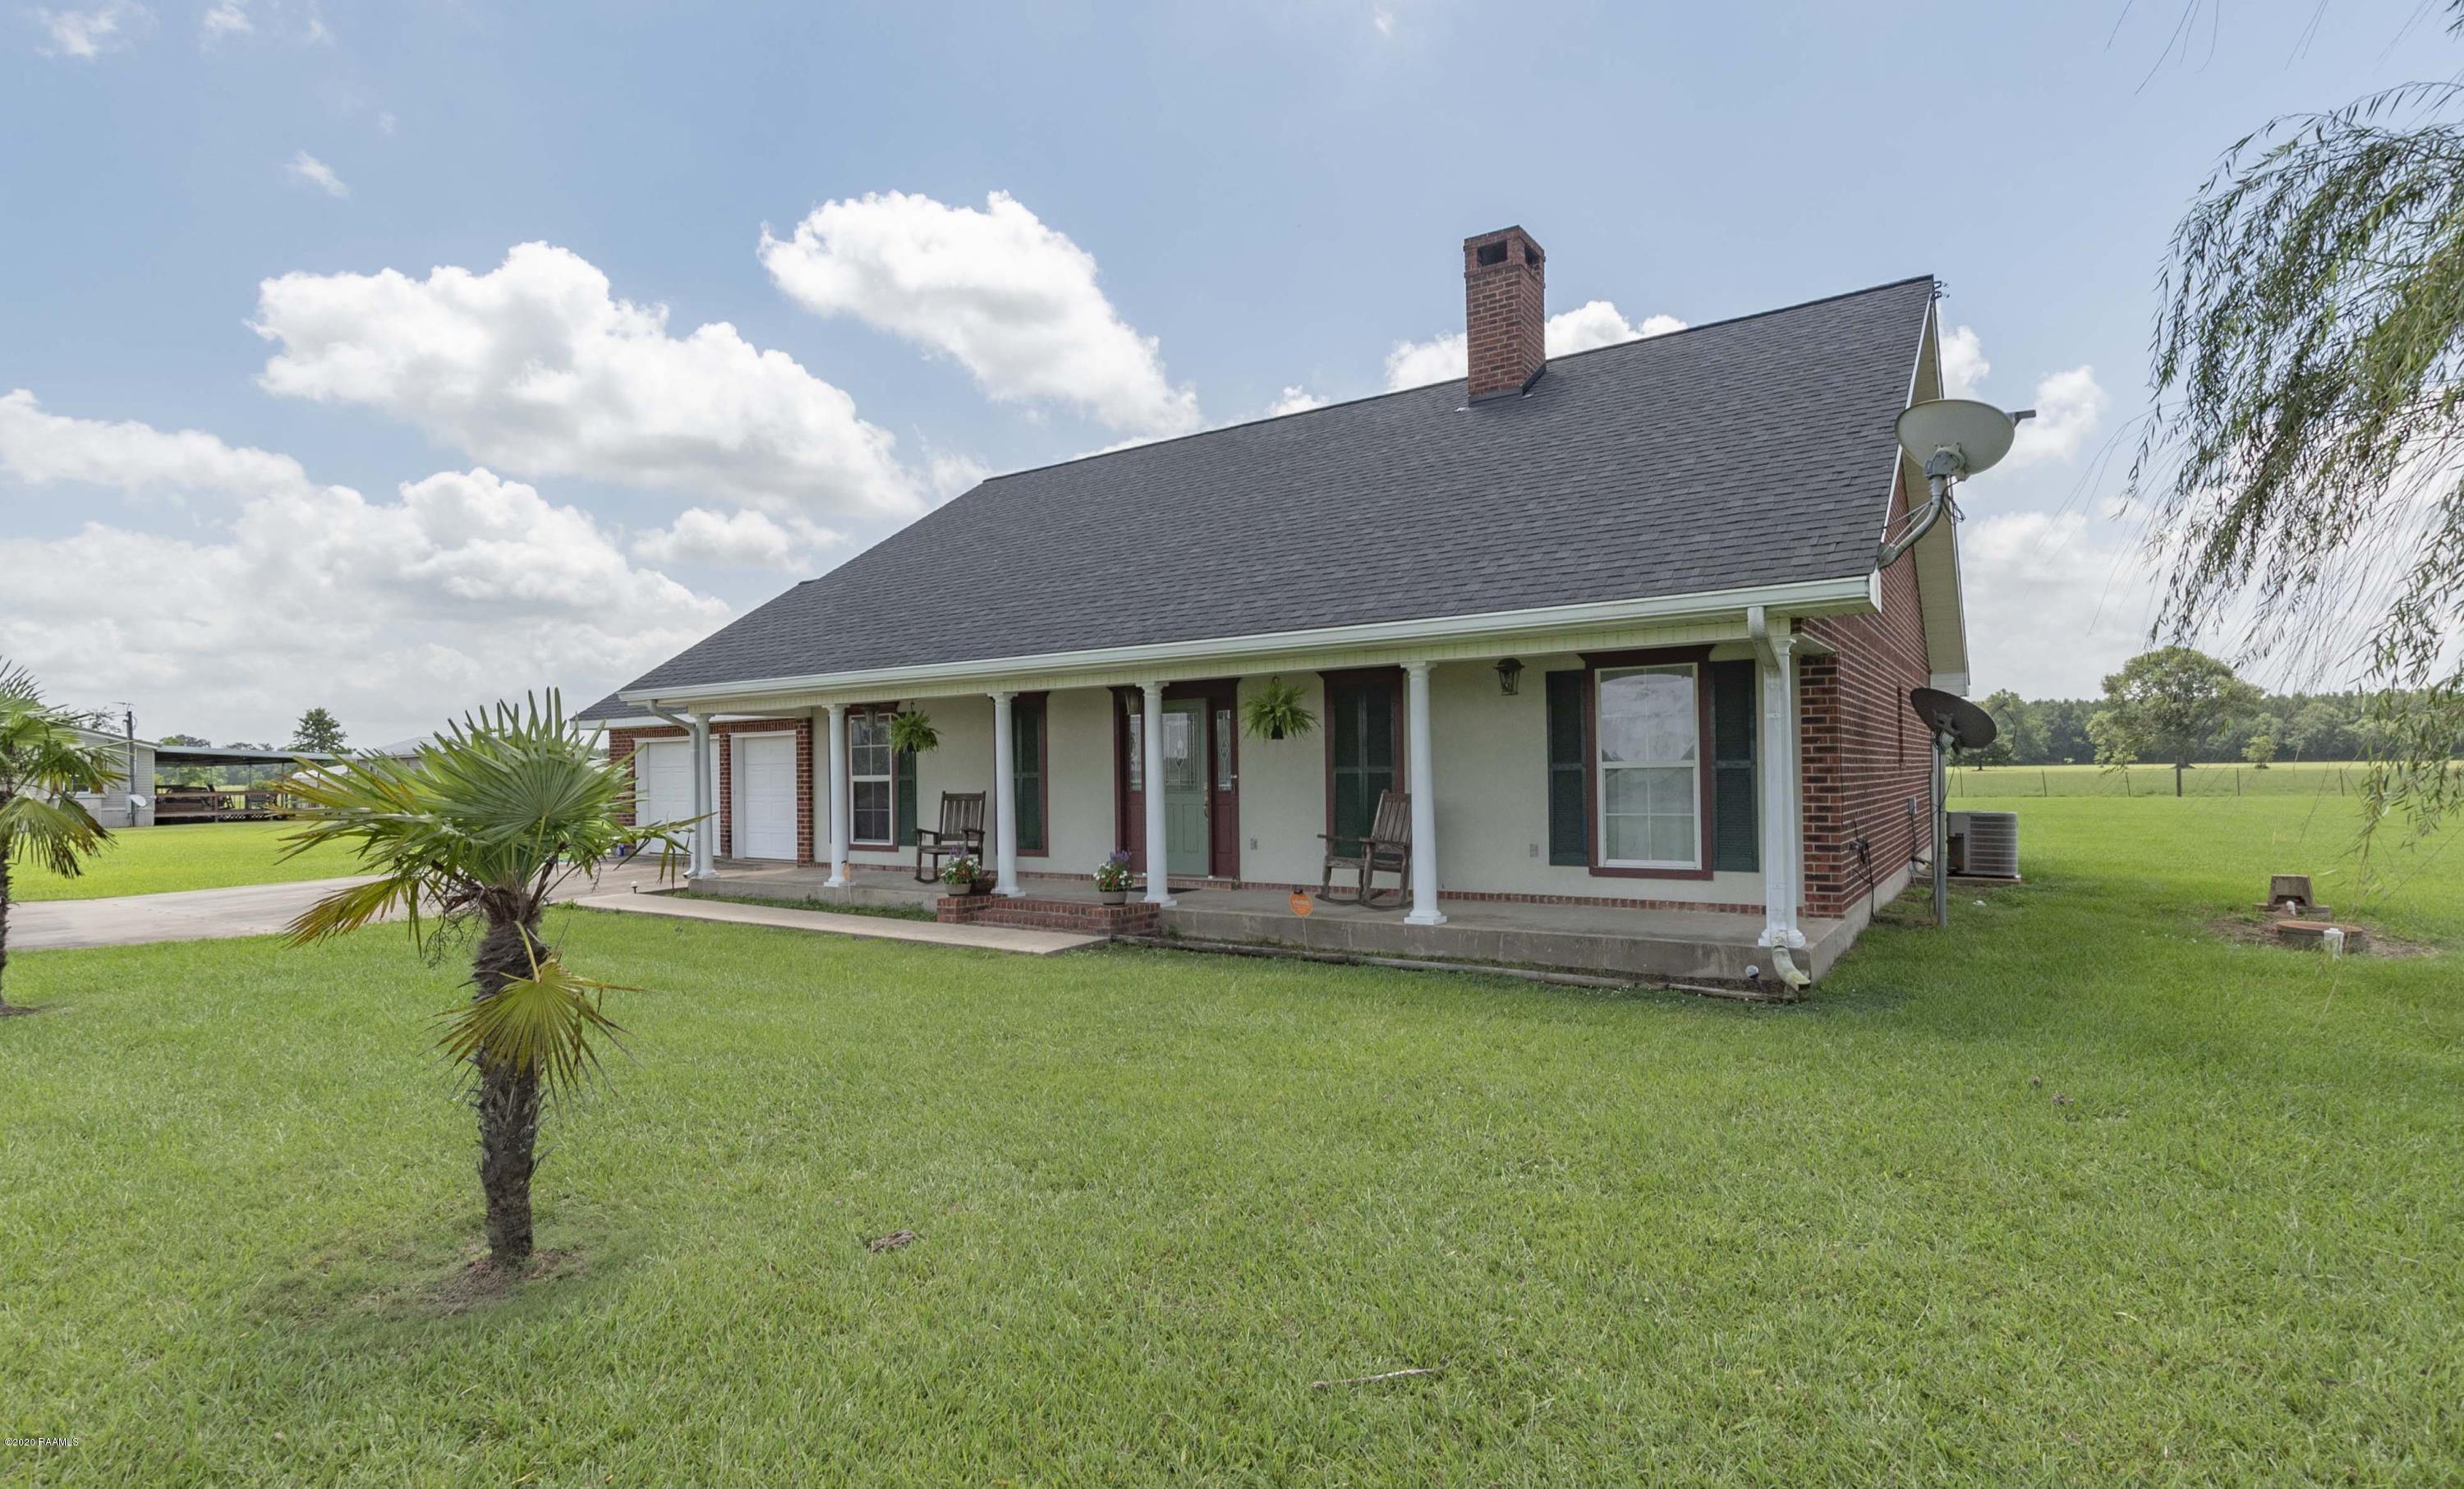 422 Eugene Soileau Road, Washington, LA 70589 Photo #3